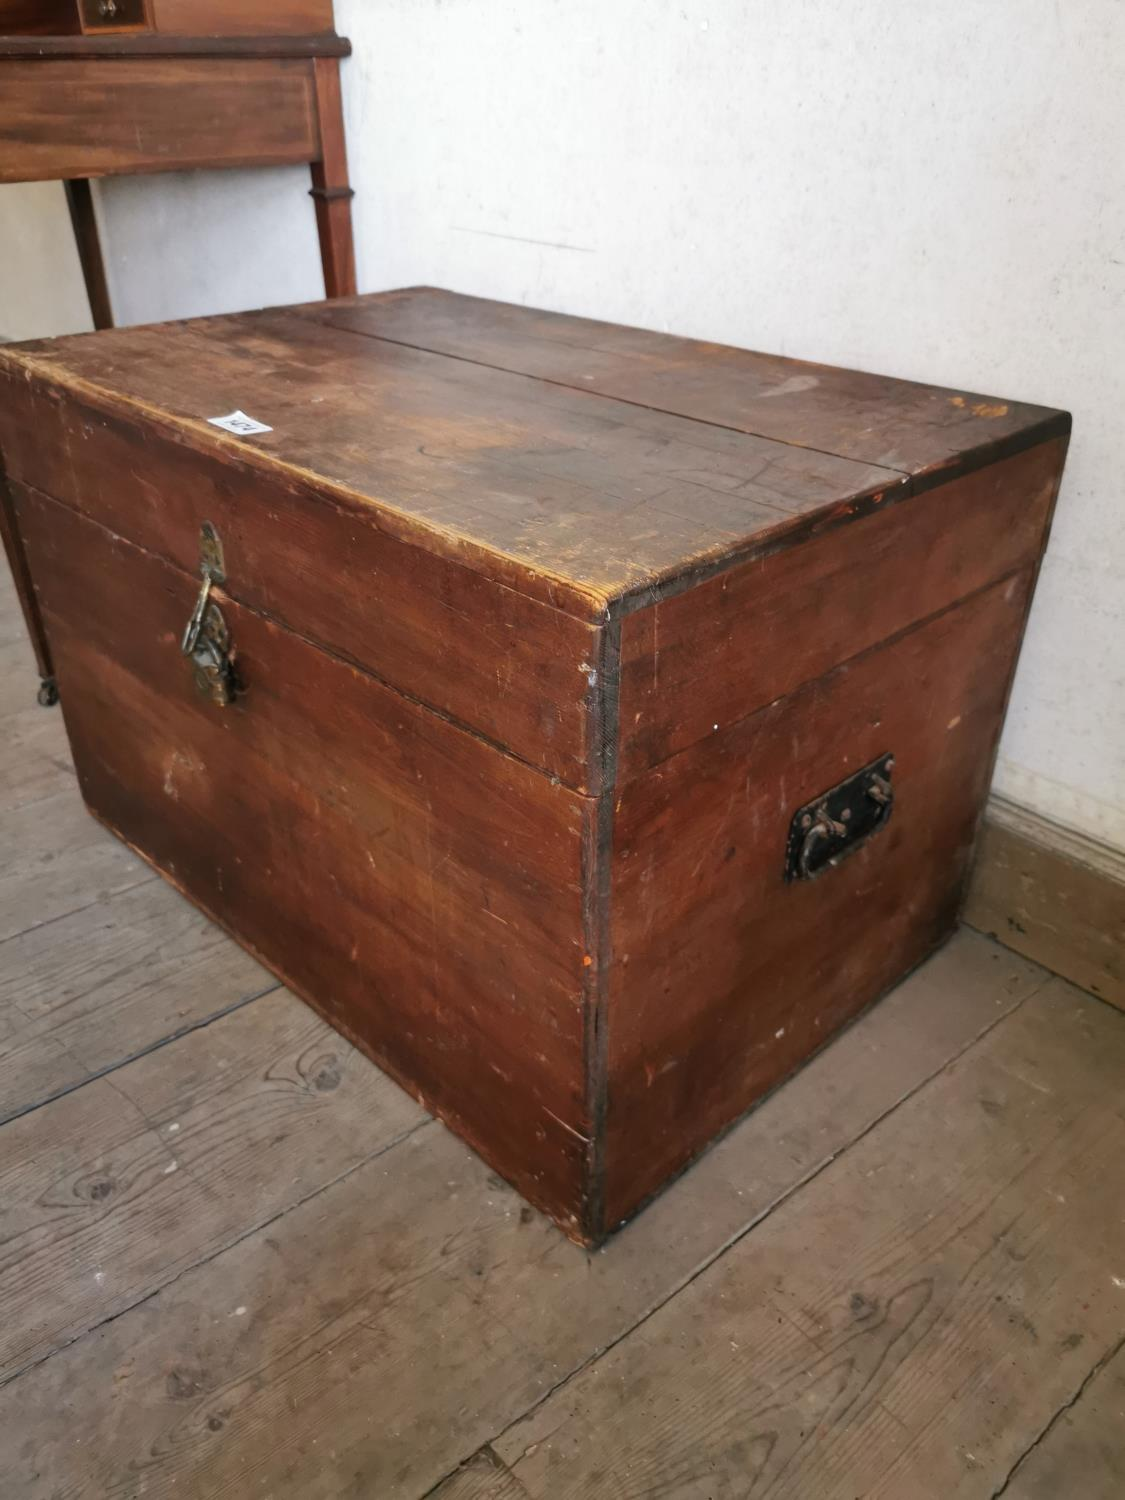 Early 20th C. pine trunk. - Image 2 of 2